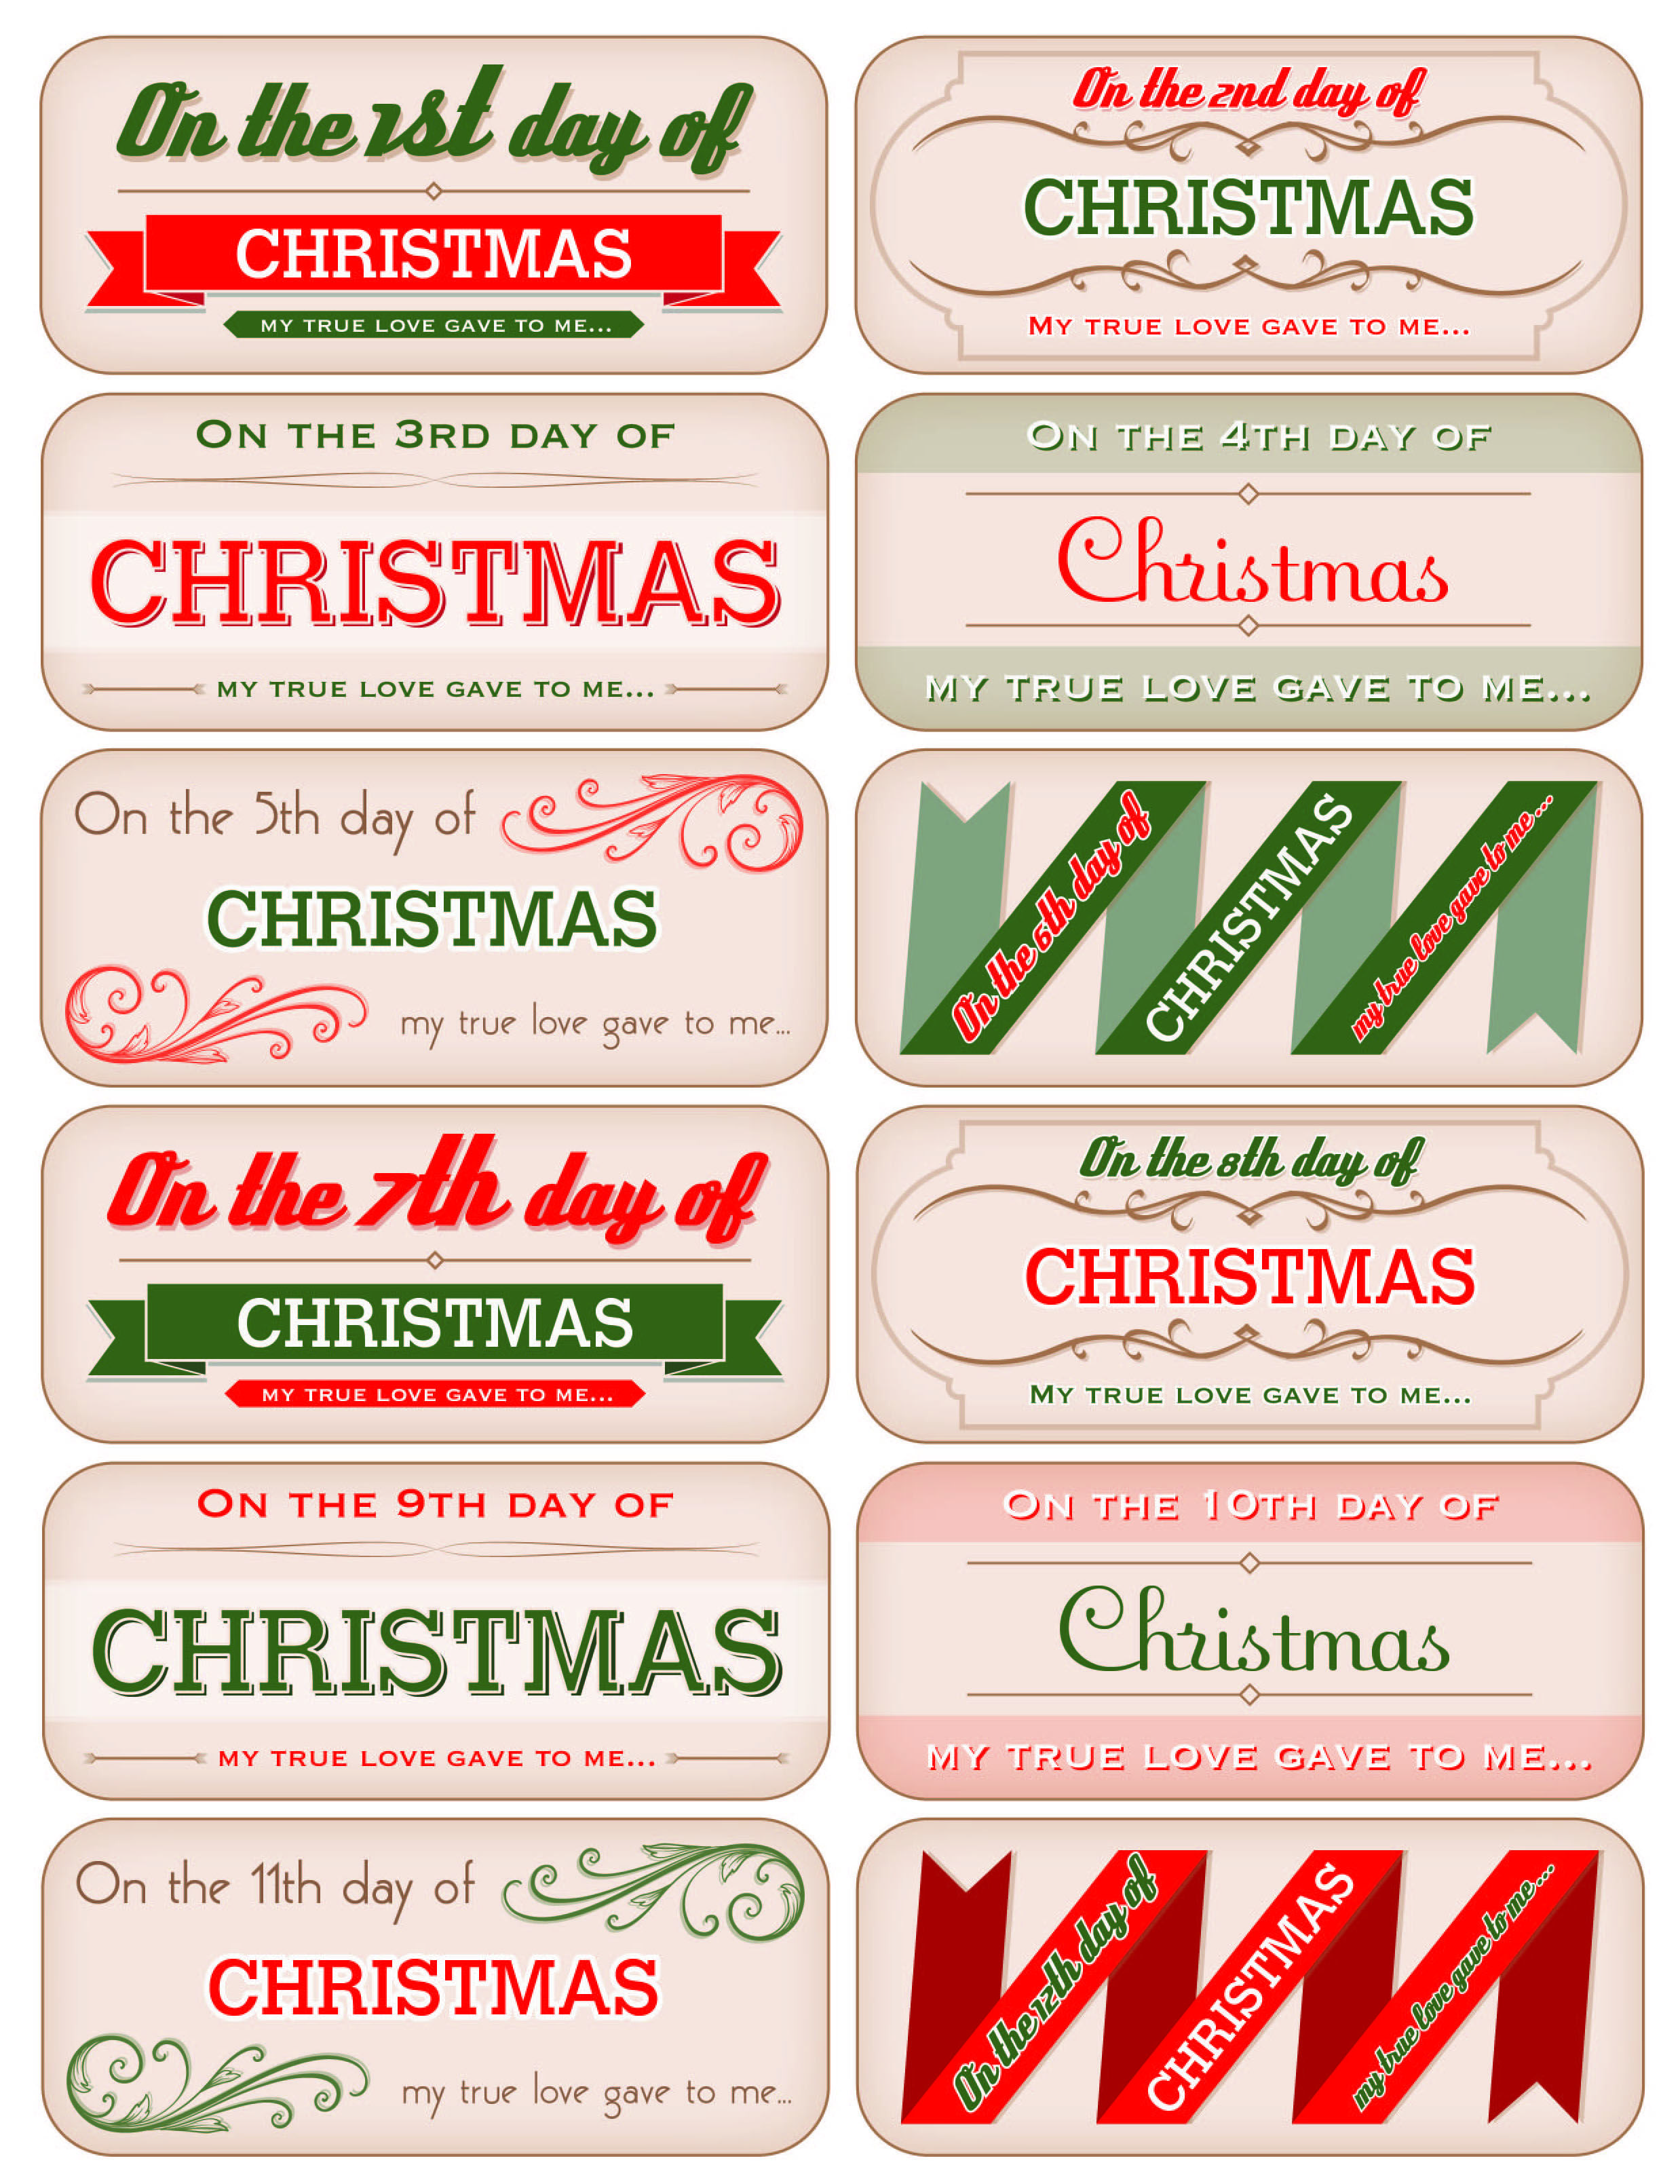 12 days of christmas tags - free download! | Decking the Halls with ...